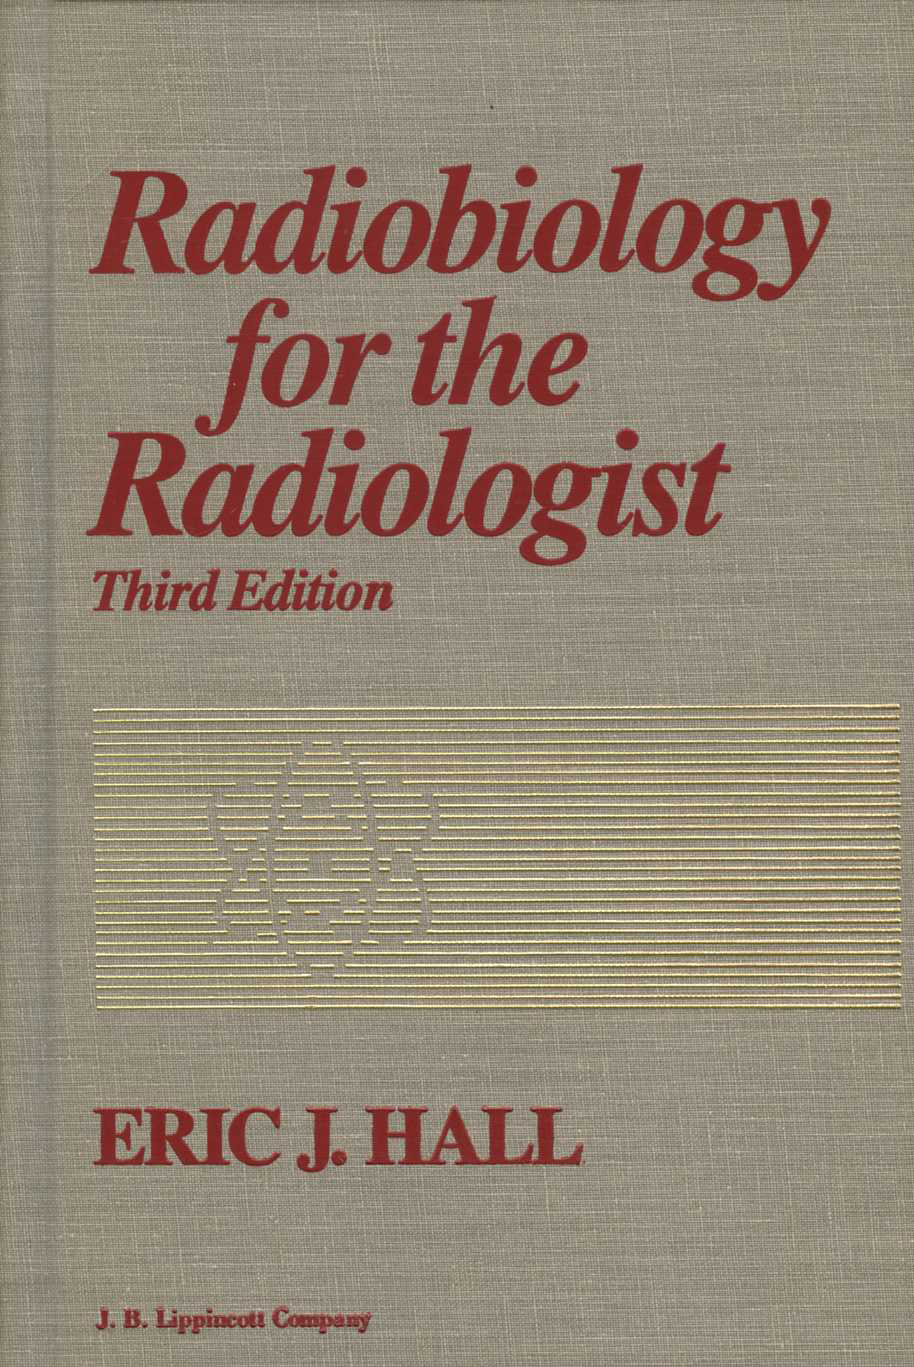 Radiobiology for the radiologist (Eric J. Hall)